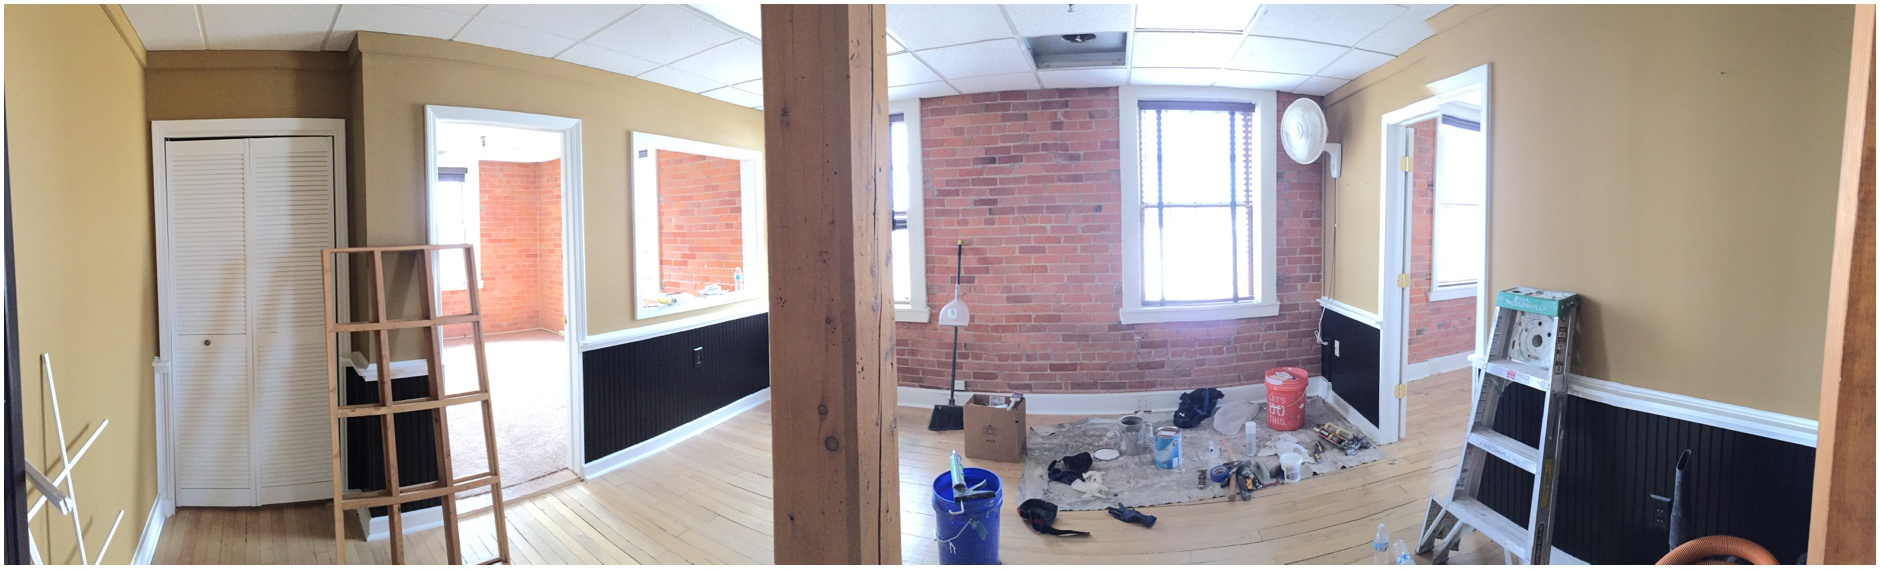 Before and After Renovation of Plymouth Photo Studio, Aubrey Grace Photo